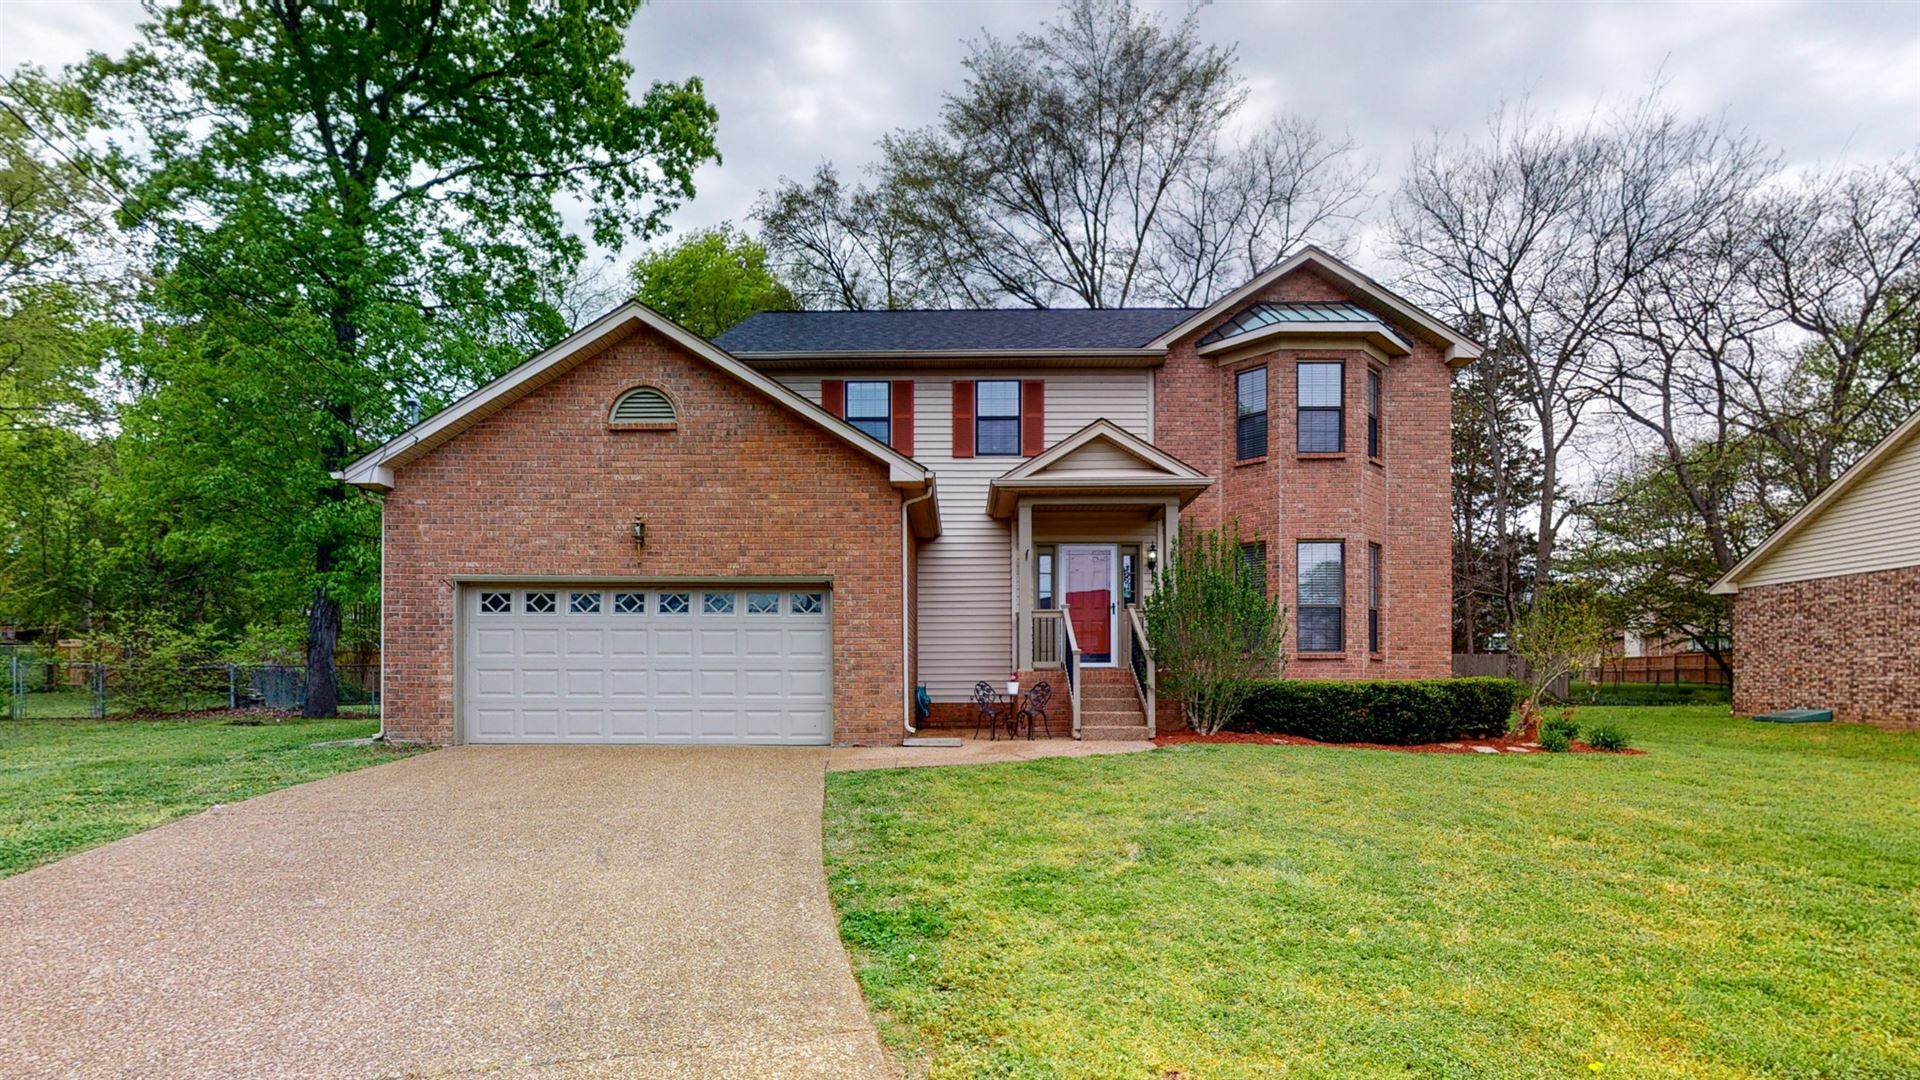 1112 Elkader Ct S, Antioch, TN 37013 - MLS#: 2245012